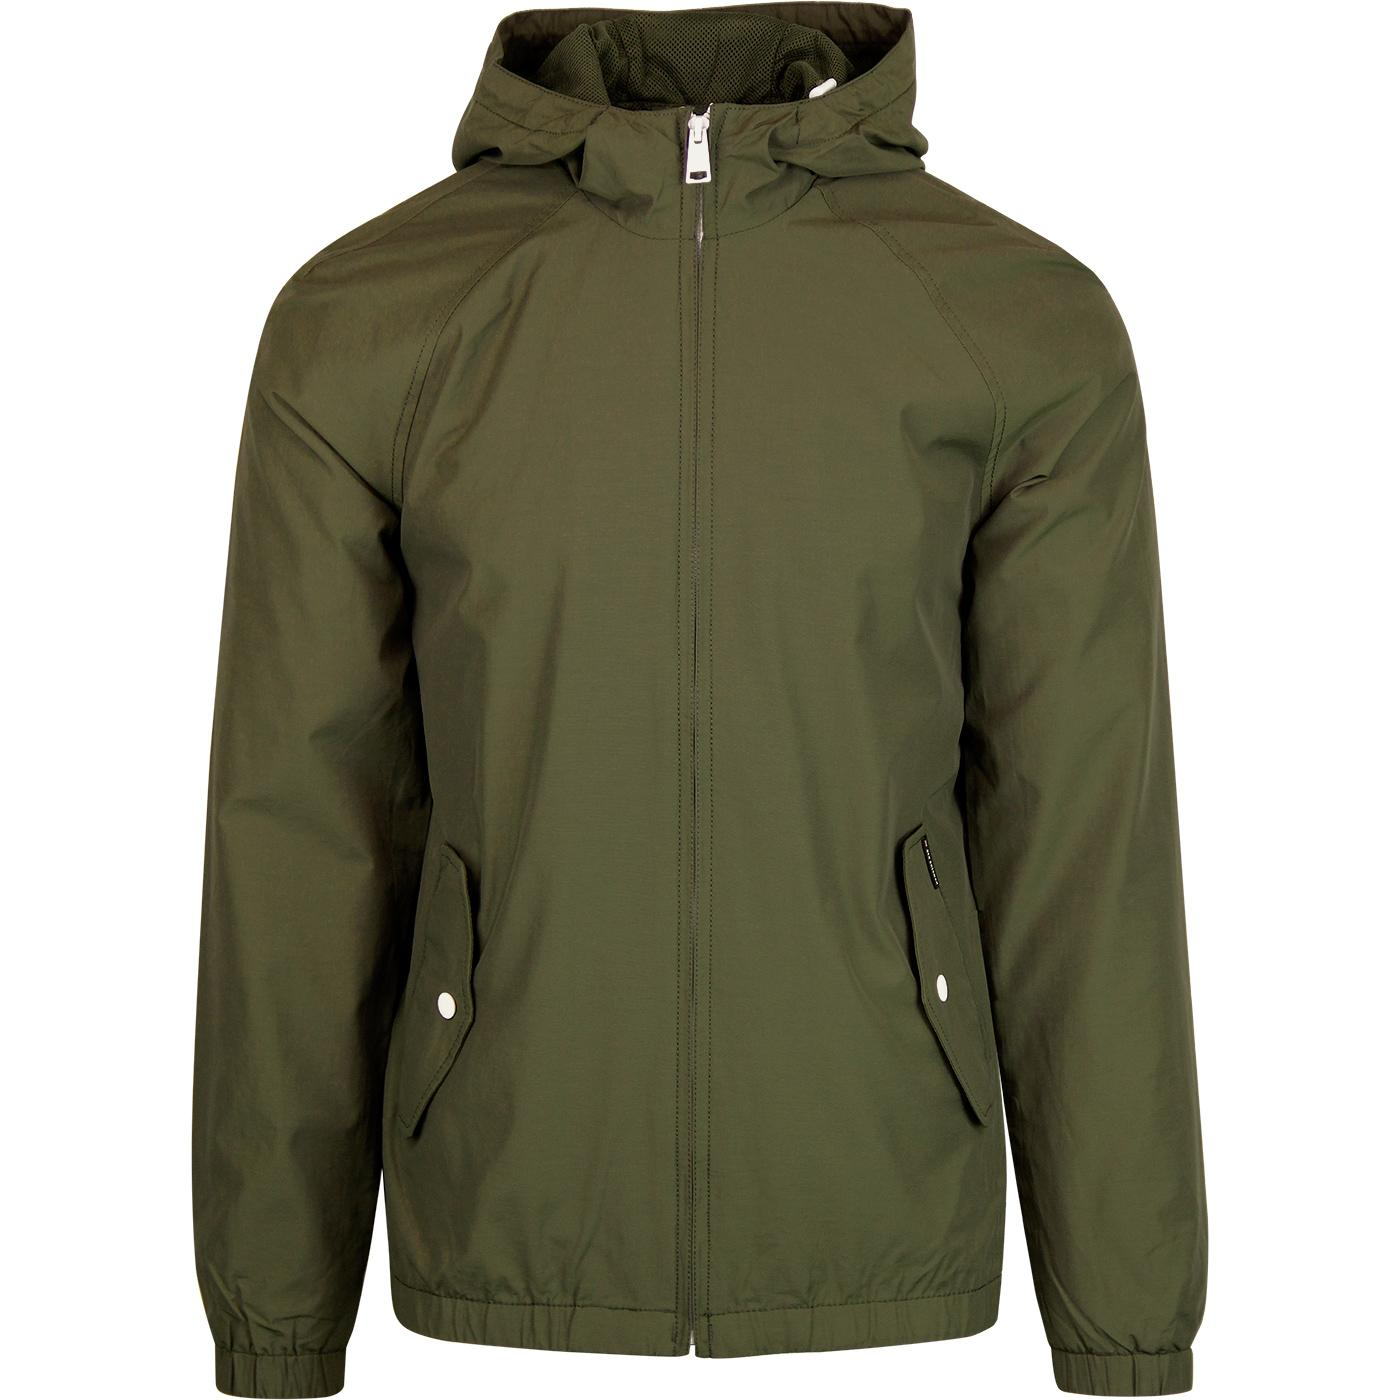 BEN SHERMAN Retro Mod Casual Hooded Jacket (Khaki)